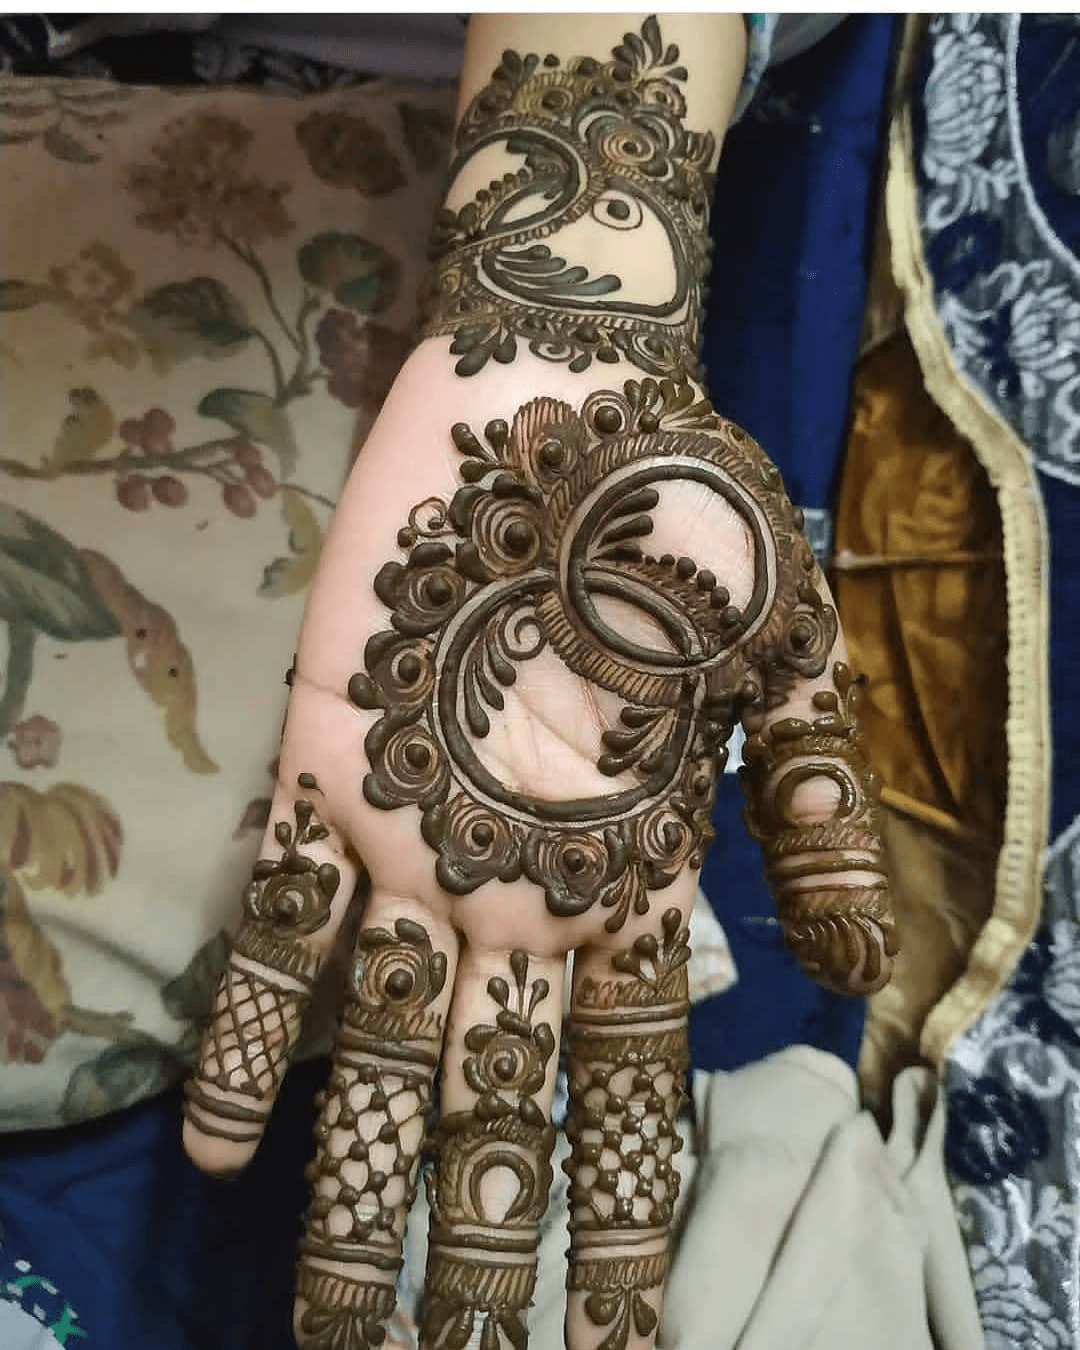 We are sharing the best 100 mehndi designs with beautiful simple mehndi designs for wedding, engagement, party, and festival, new mehndi design, easy mehndi design